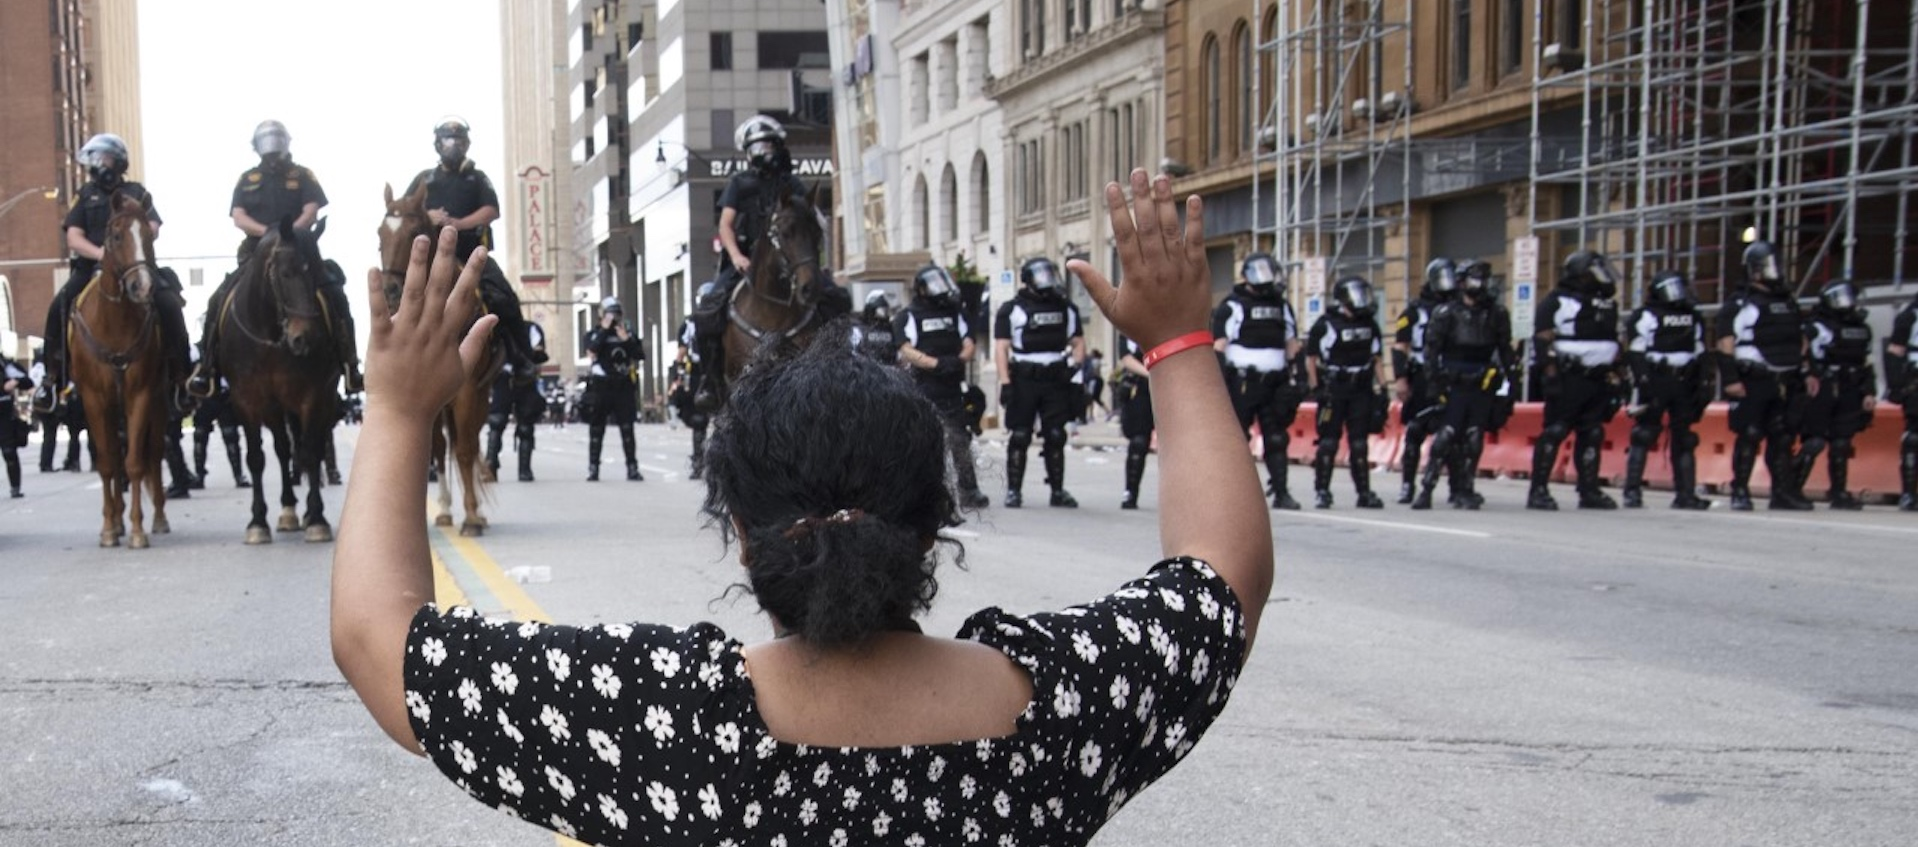 A young woman of color with her back to the camera sits with her arms raised in front of a line of police officers during a protest for the death of George Floyd in Columbus, Ohio, Saturday, May 30, 2020; photo: Mary Barczak